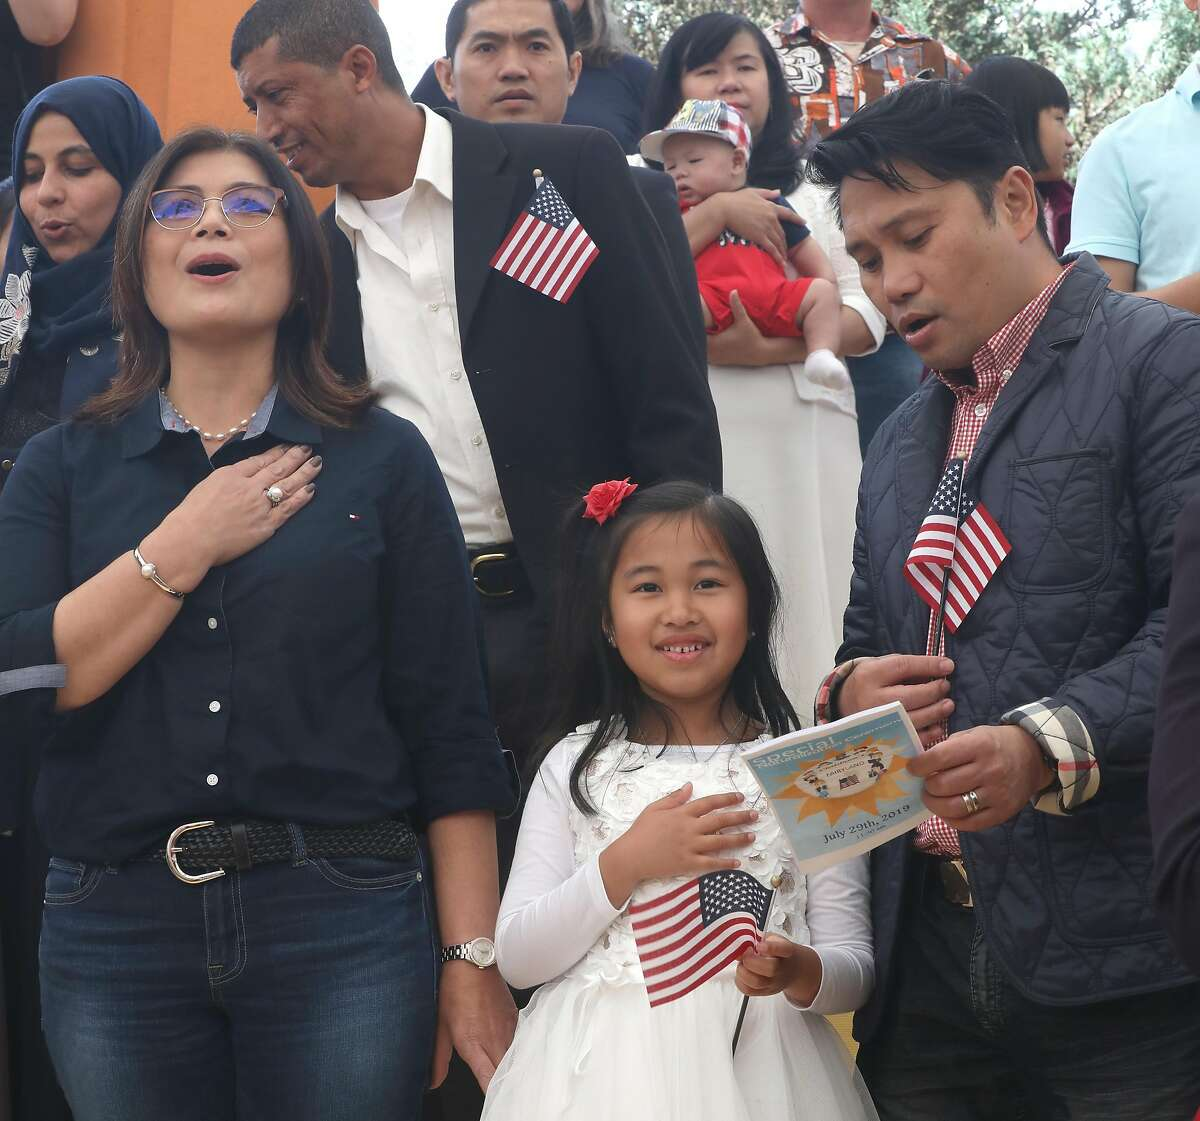 Isabella Basinang (middle), 6 years old, from Daly City says the pledge of allegiance next to her parents Marienilla Basinang (left) and Glen Basinang (right) at Children's Fairyland on Monday, July 29, 2019 in Oakland, Calif. He was one of twenty-six children ages 2-13 (from 13 countries) receiving certificates of citizenship at Children�s Fairyland from the U.S. Citizenship and Immigration Services.